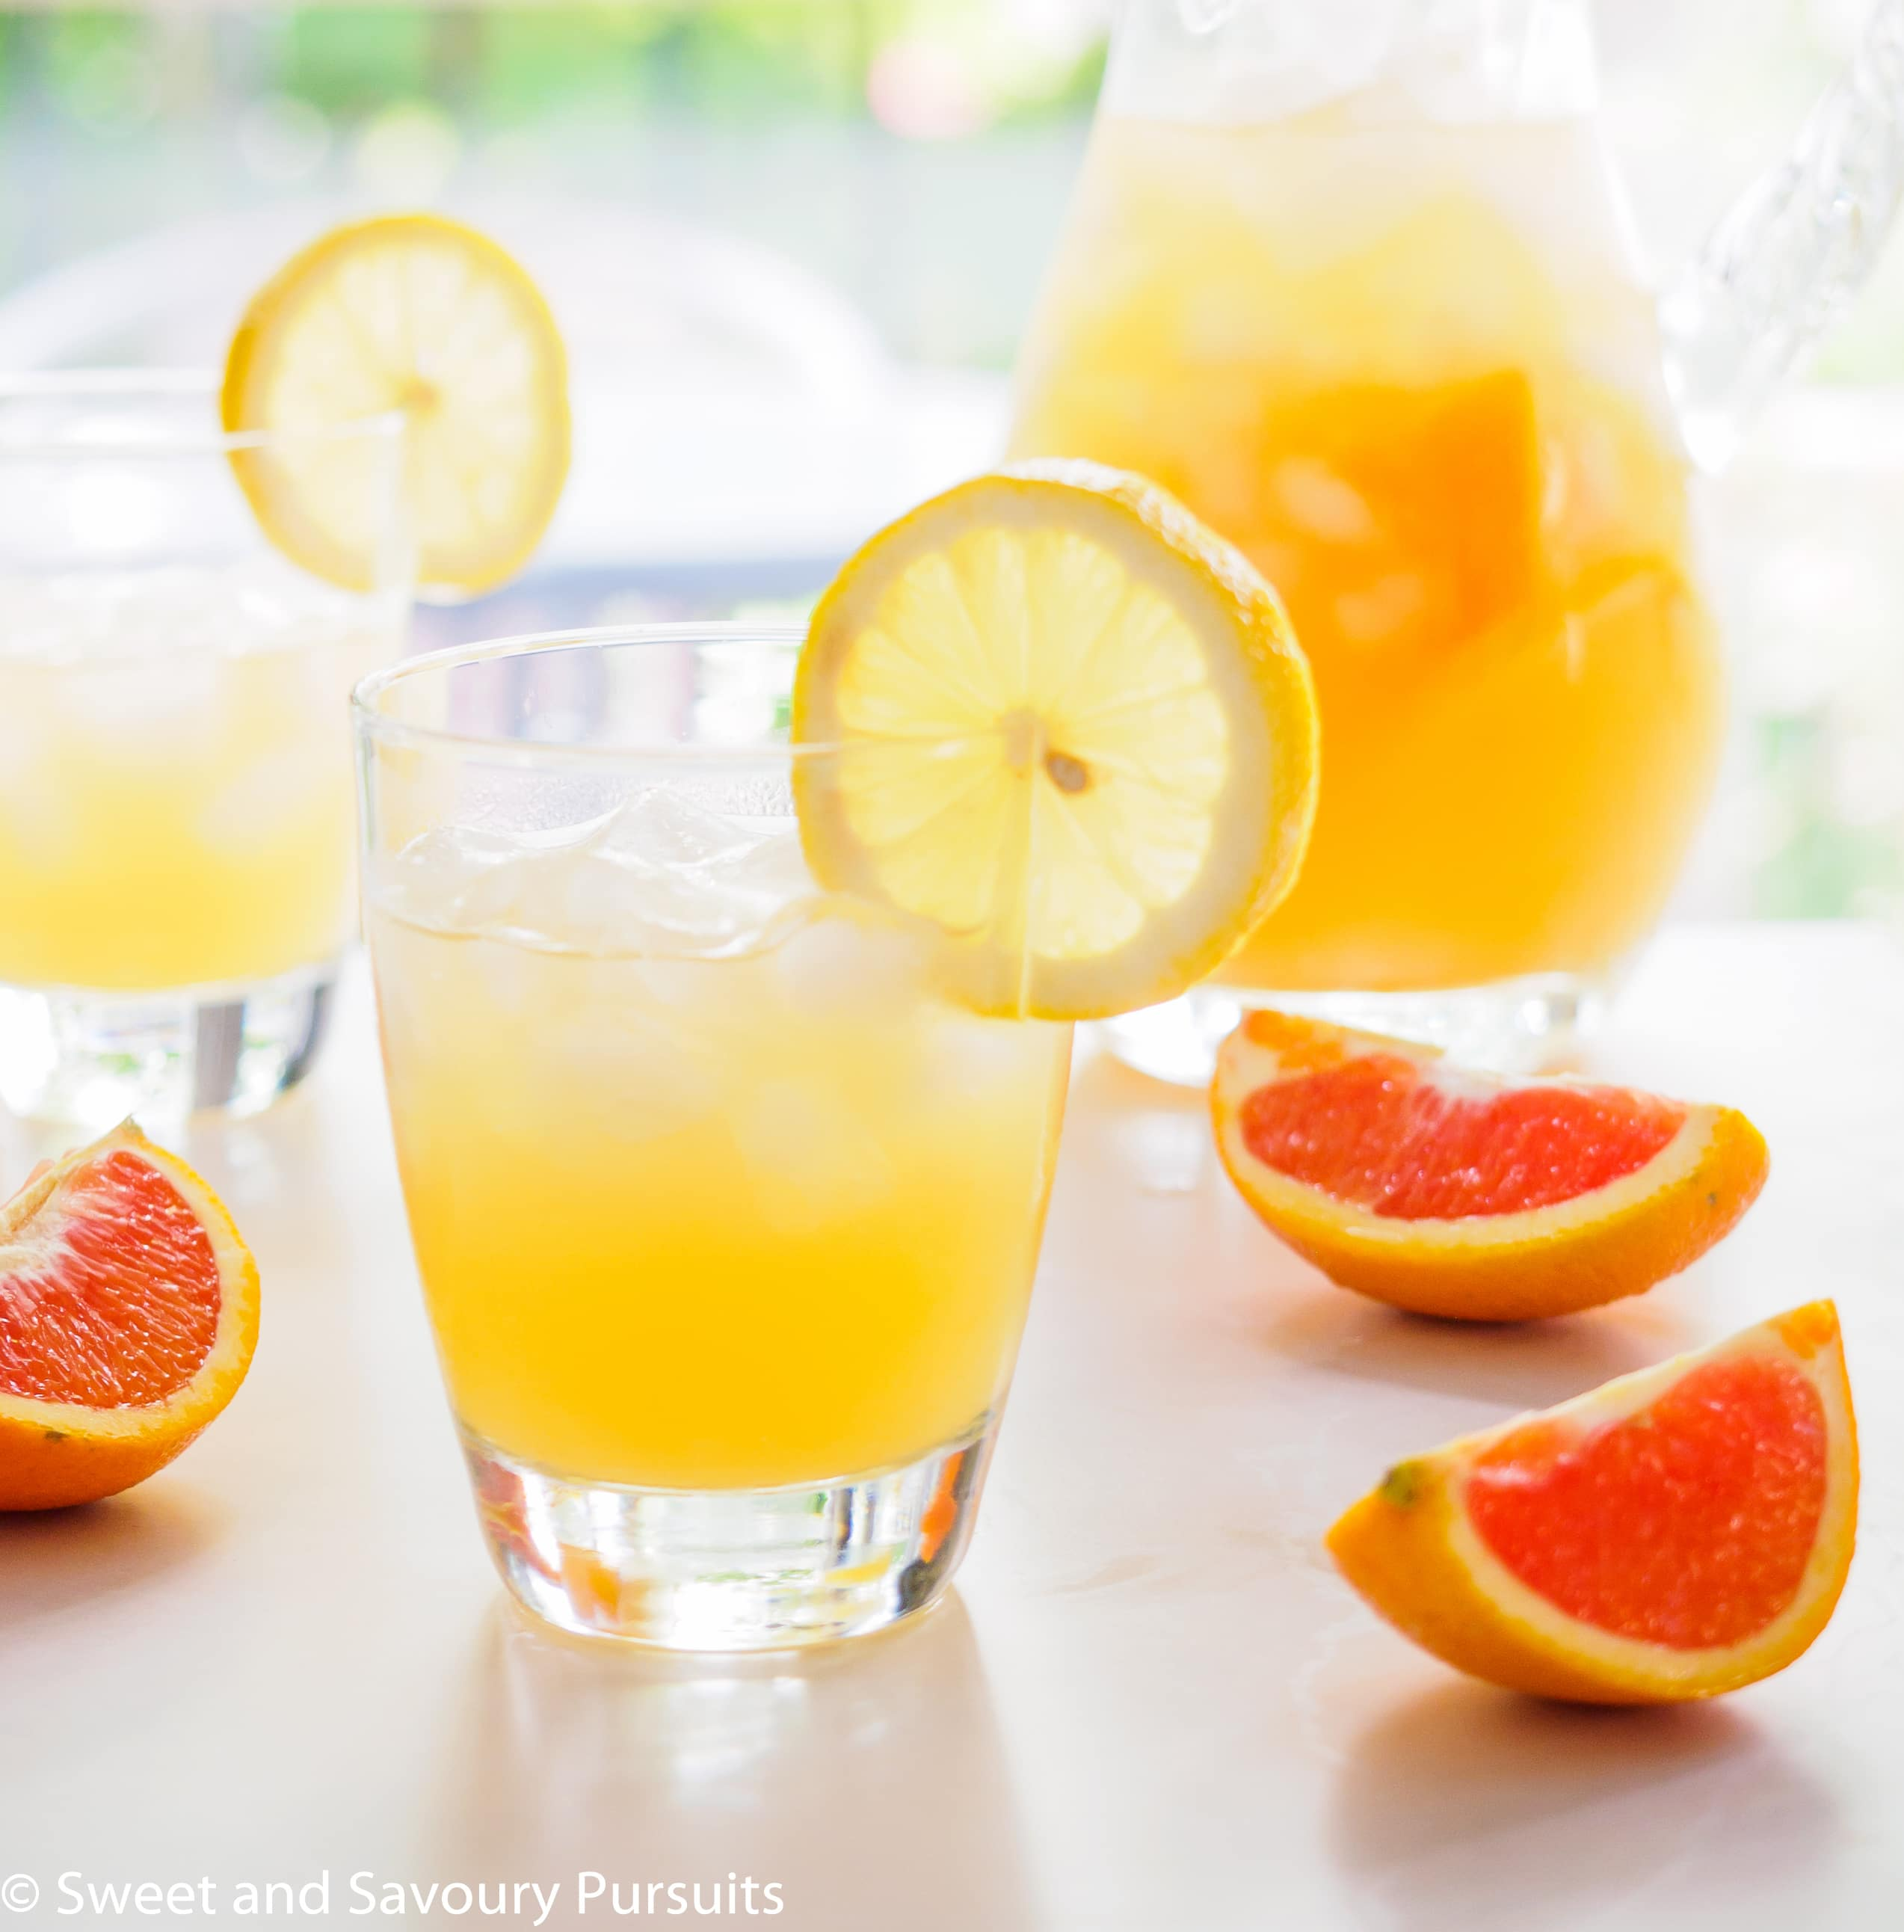 Cara Cara Orange and Citrus Drink poured into glasses.